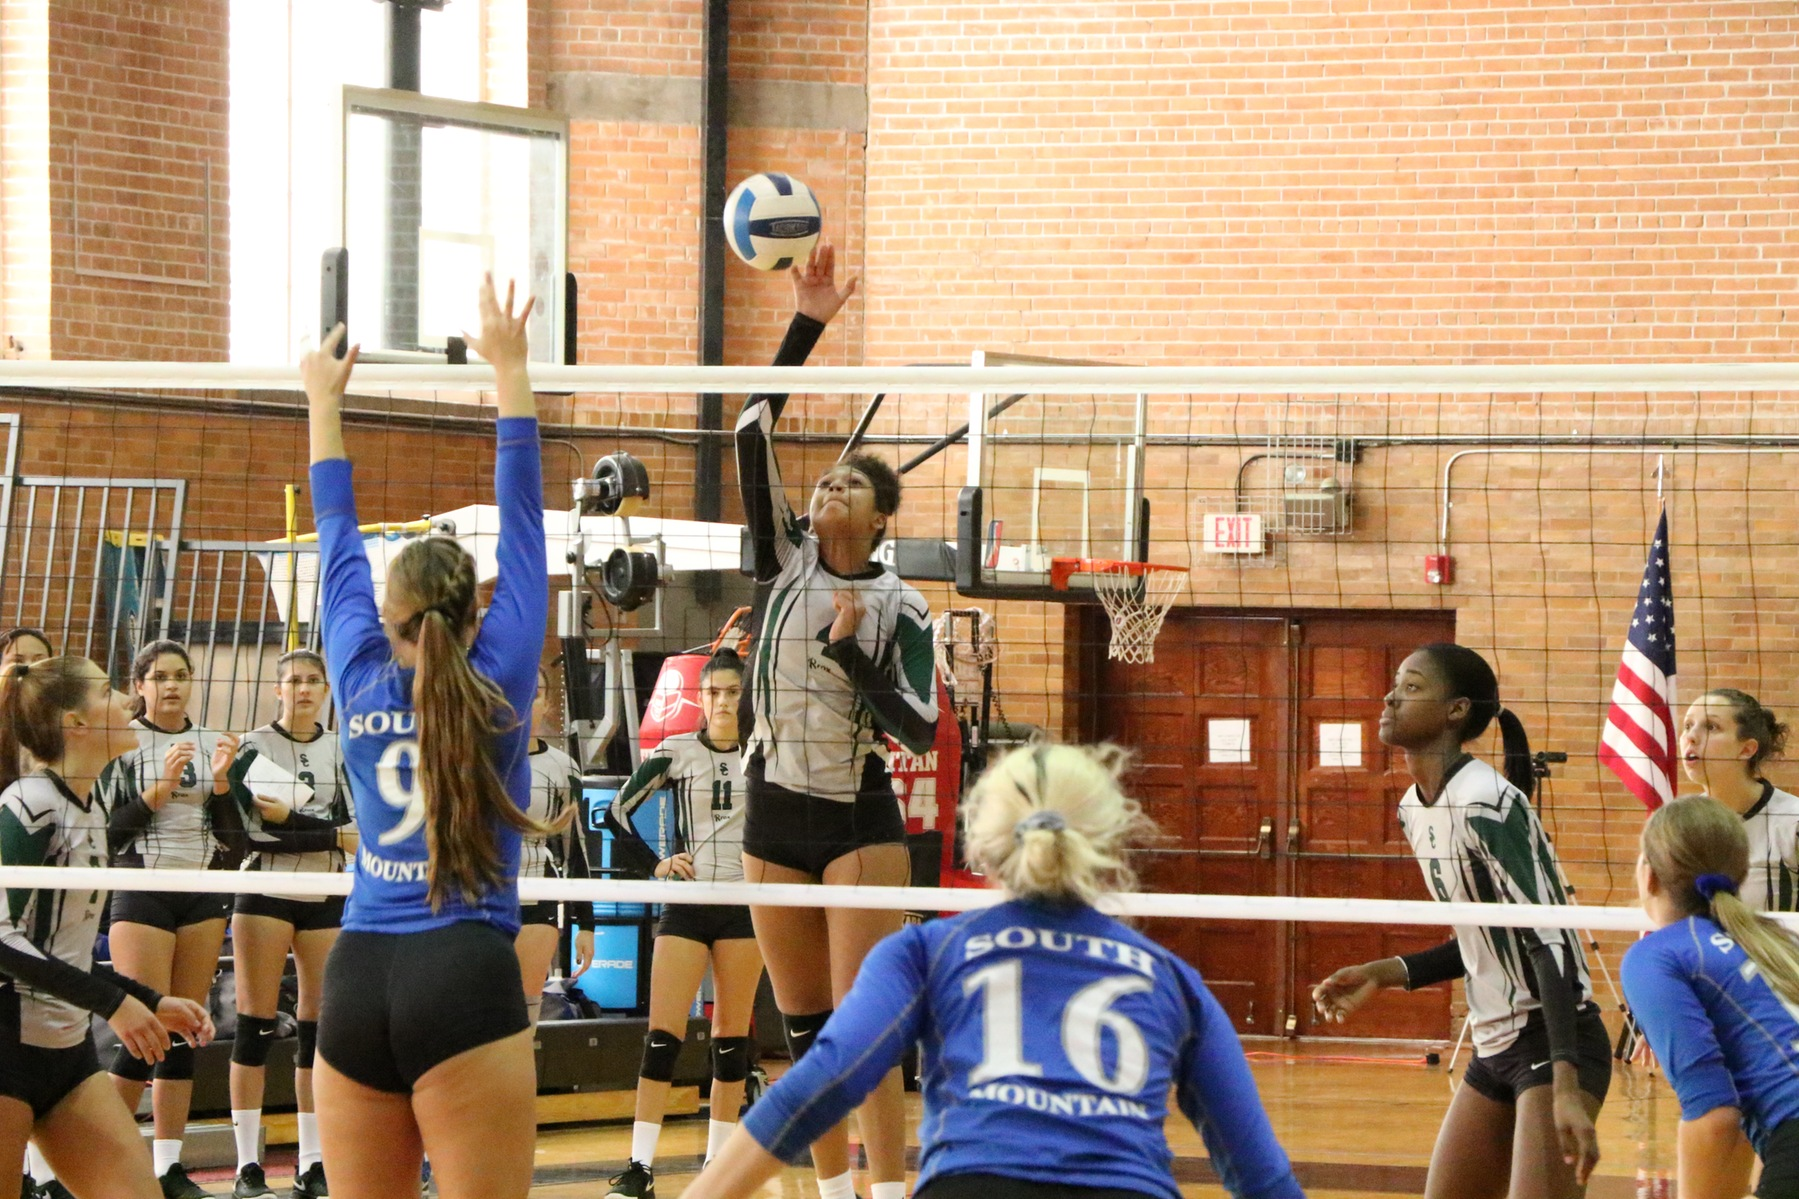 Yanlis Feliz goes up for a kill in set two, versus South Mountain Community College